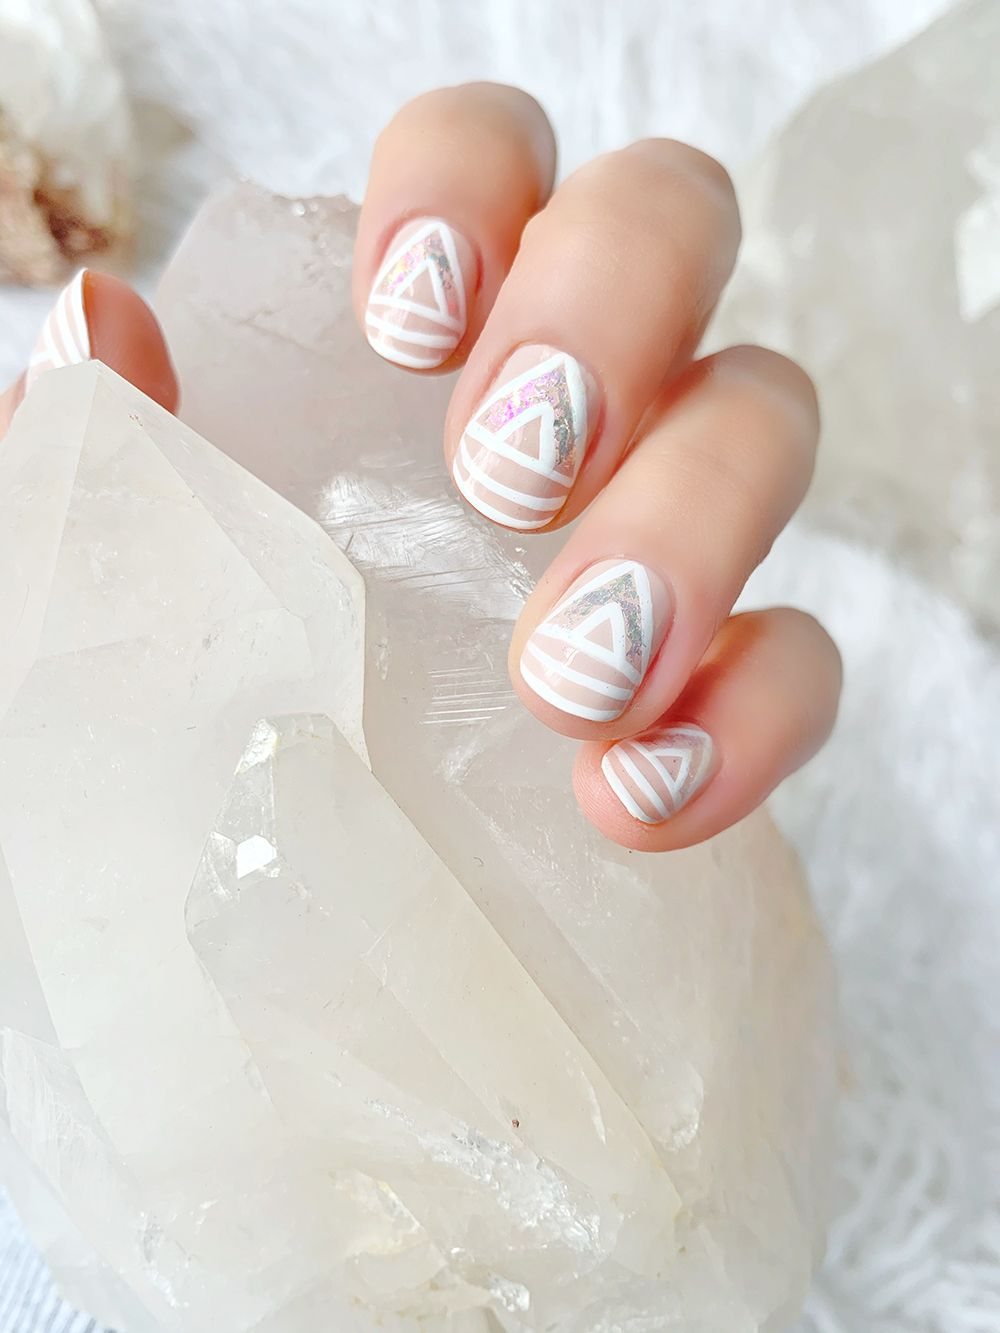 Positive Vibes Only Clear Out The Negative Energy With Quartz Inspired Nails Lulus Com Fashion Blog In 2020 White Nail Polish White Nails Quartz Nail